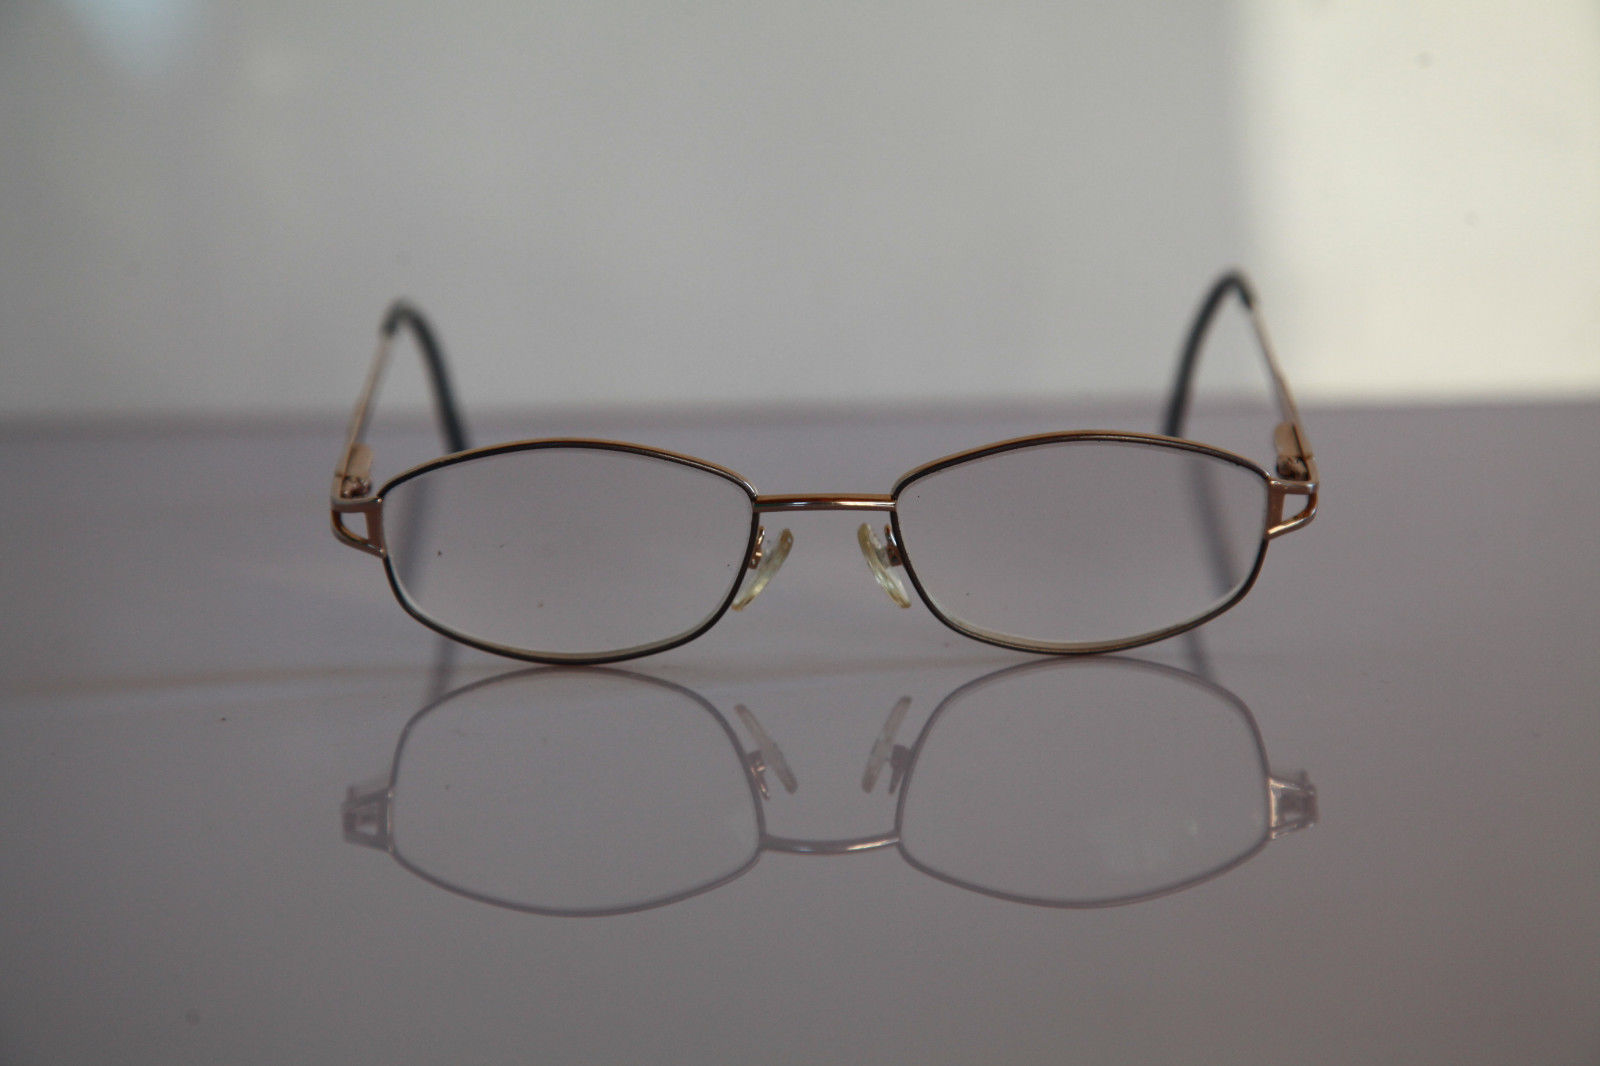 AMA L'ART Eyewear, Gold Frame, Crystal RX-Able Prescription lenses. USA